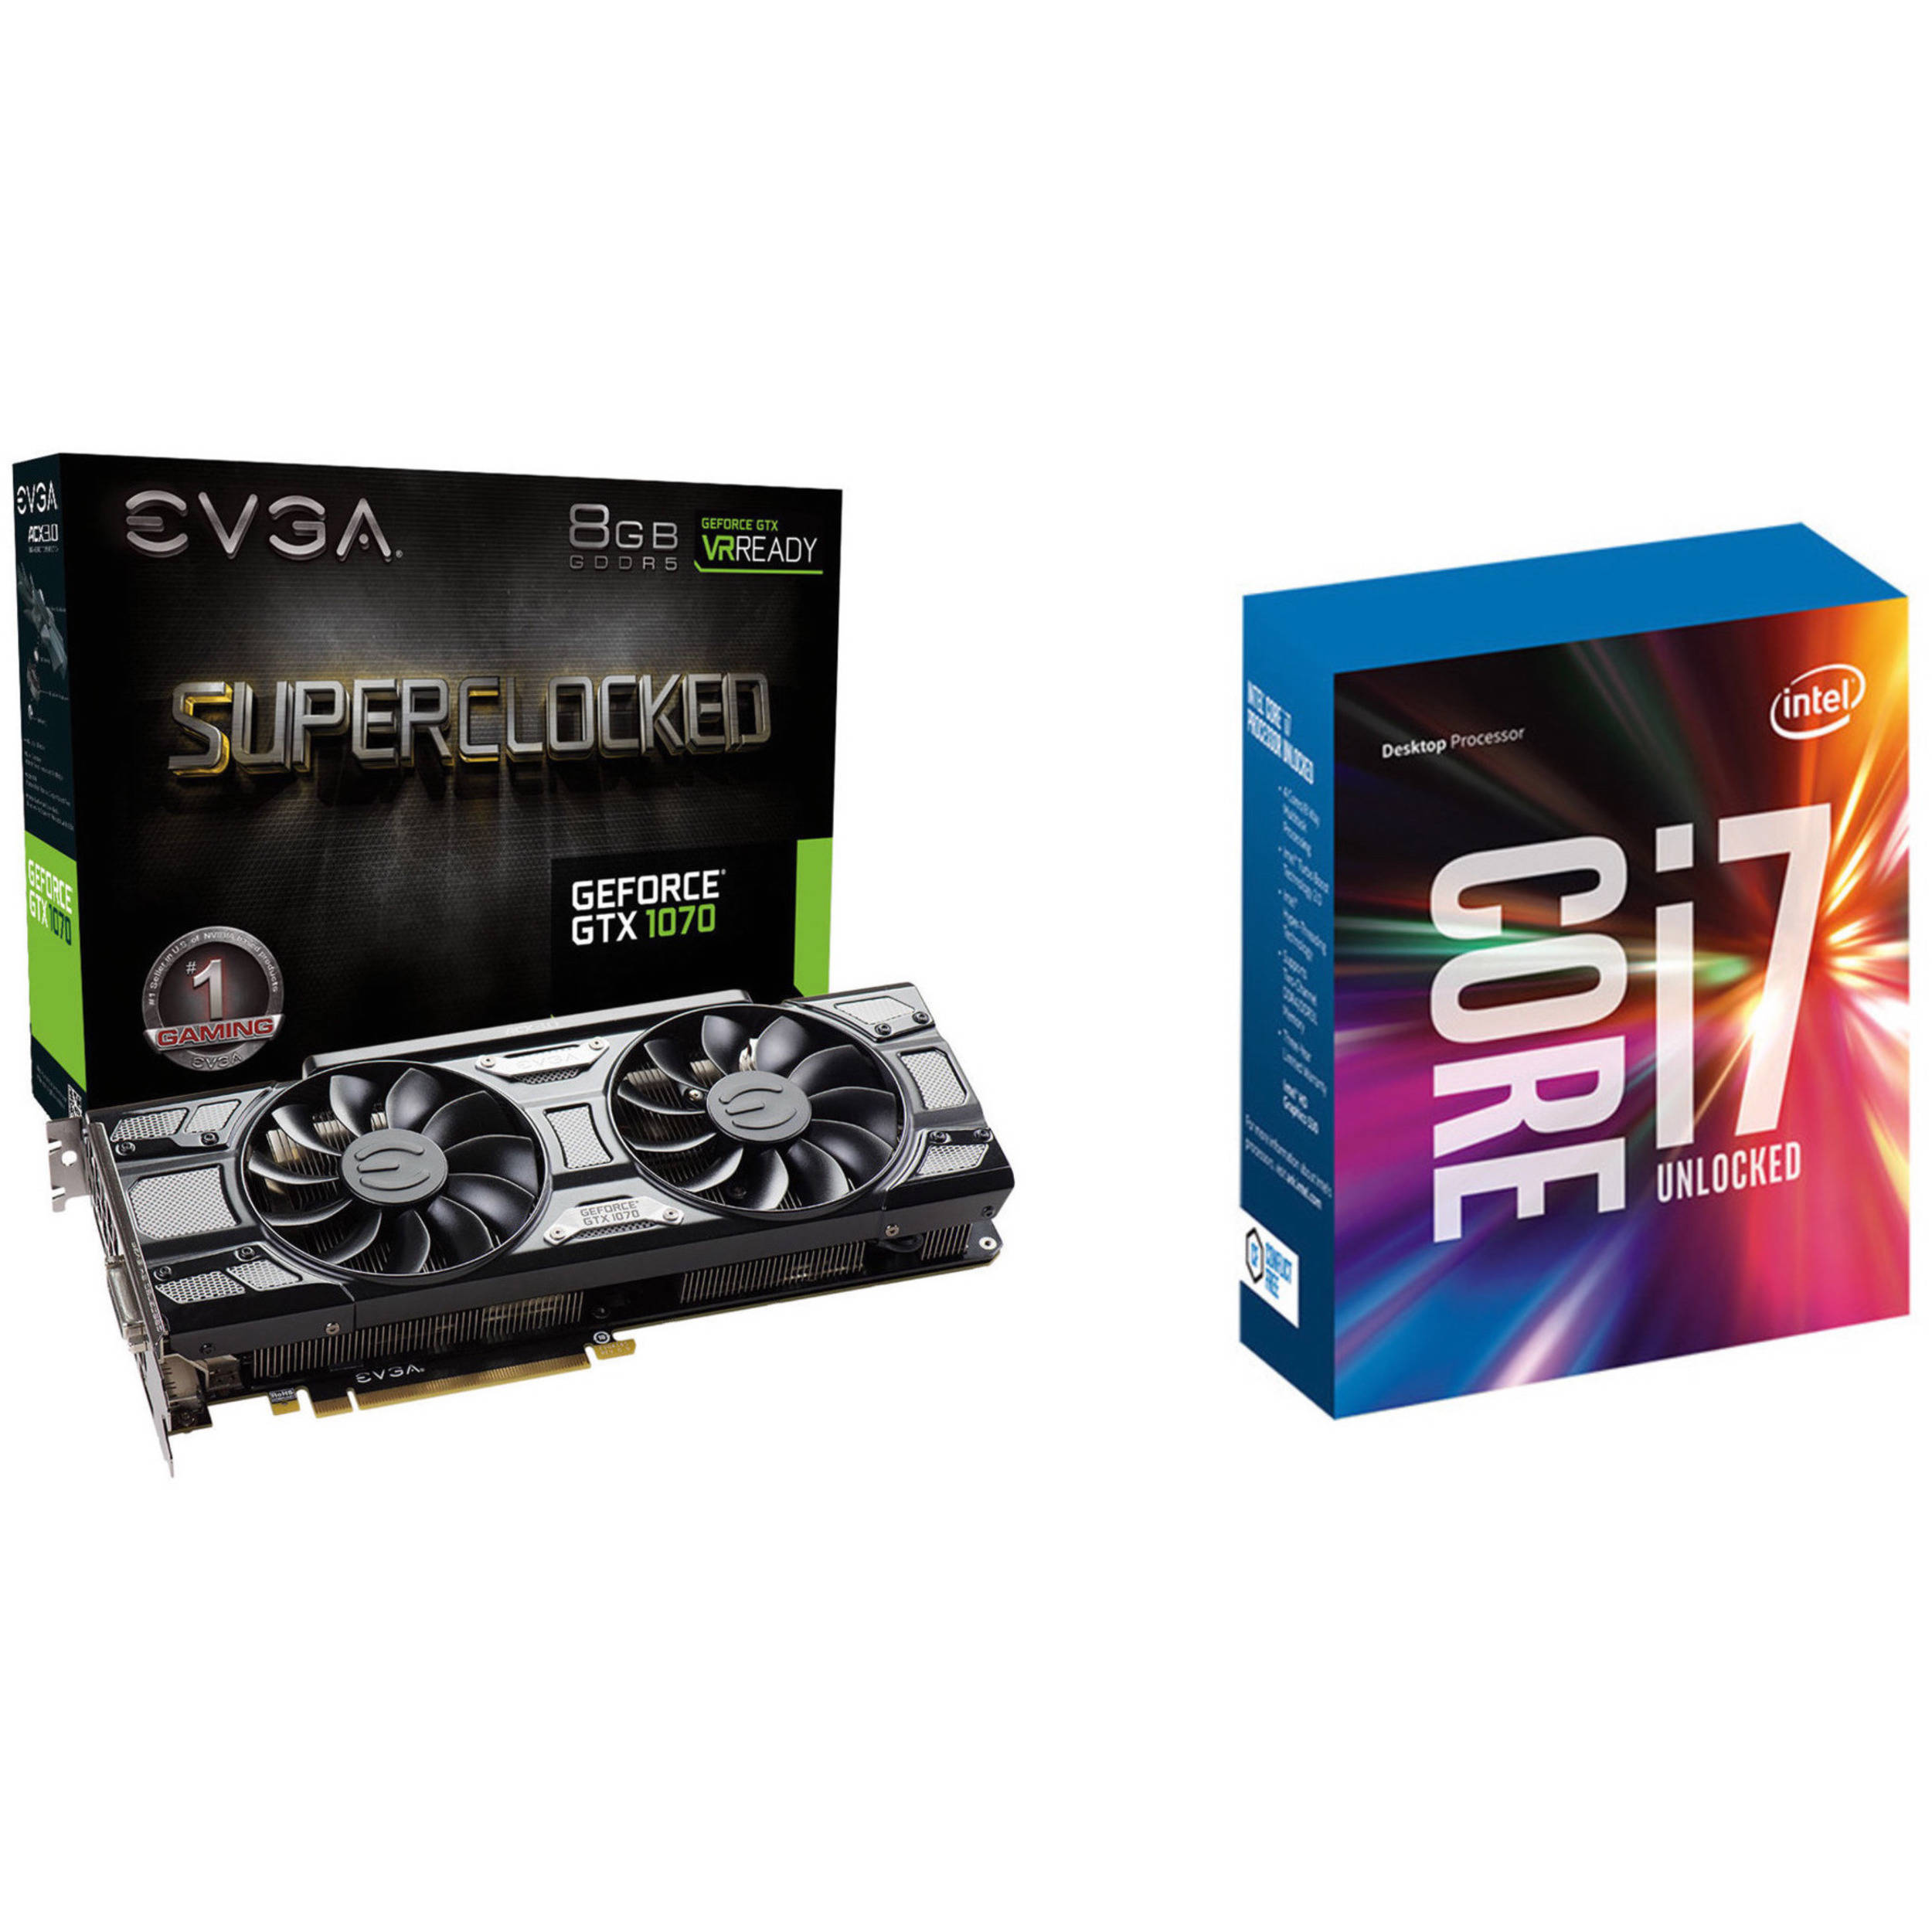 GeForce GTX 1070 SC GAMING Black Edition Graphics Card & Intel Core  i7-7700K 4 2 GHz Quad-Core LGA 1151 Processor Kit